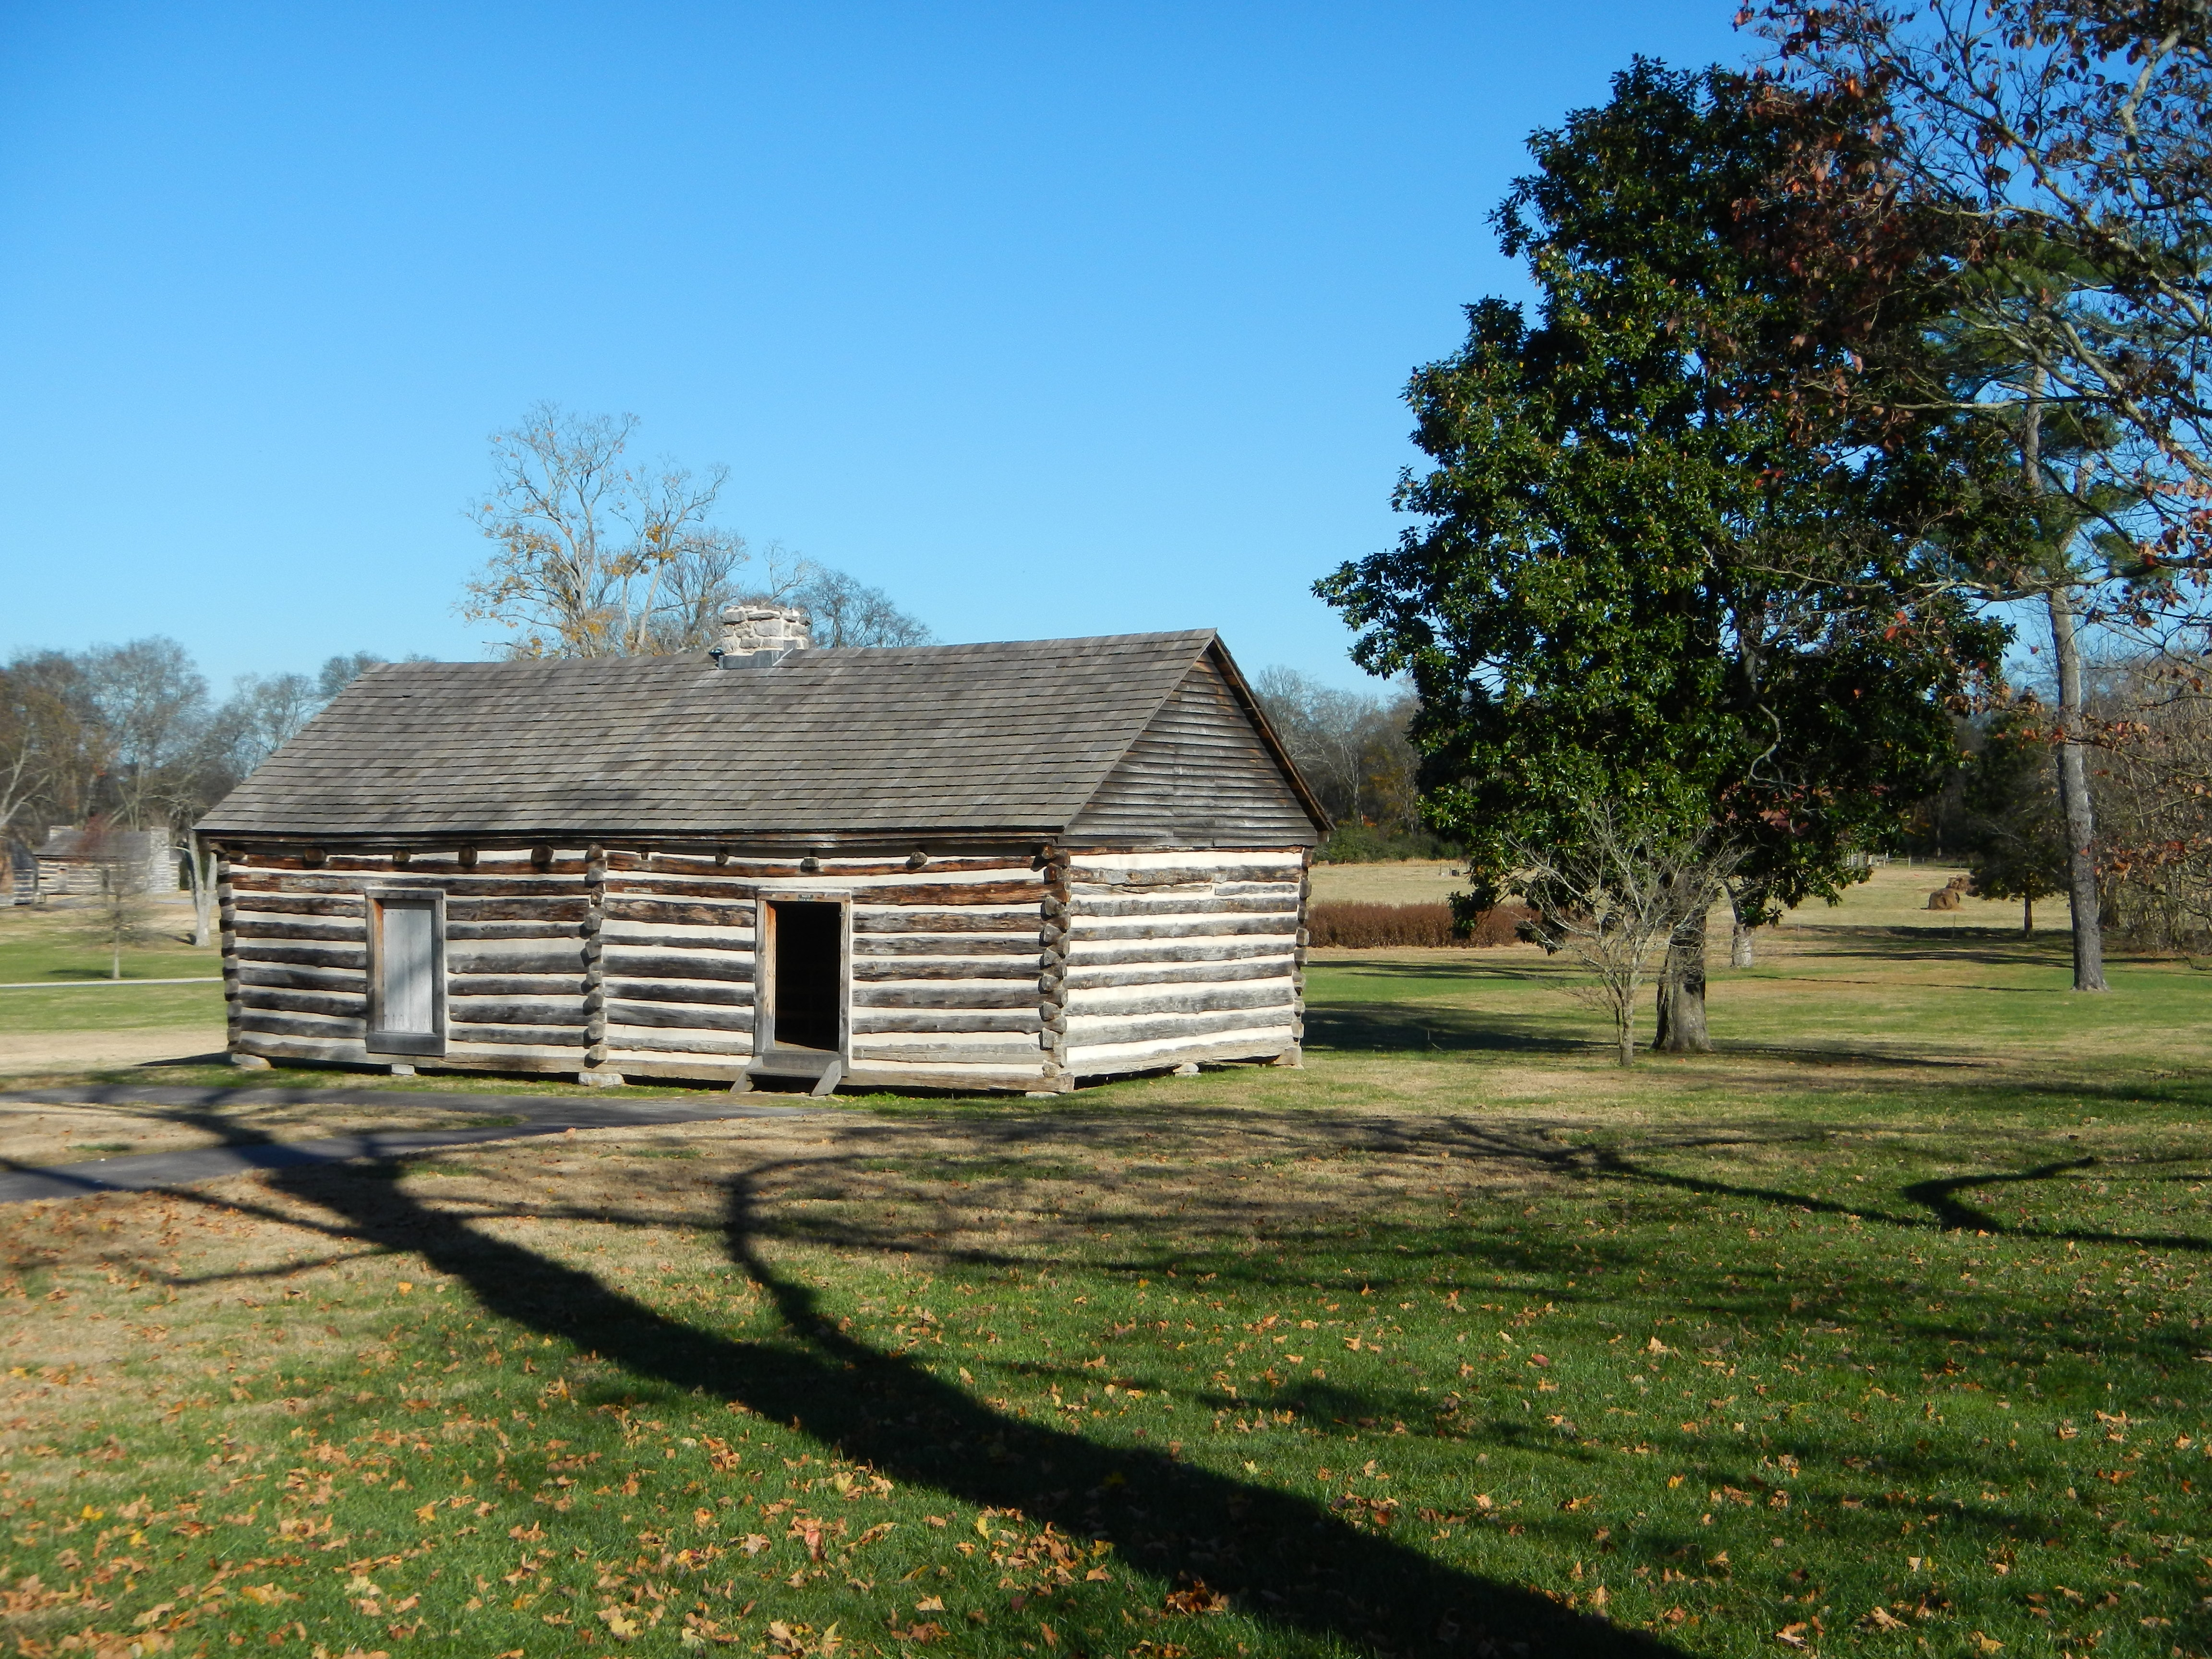 Alfred's Cabin.  One of the longest serving slaves owned by Jackson.  He stayed on after the property setup as a tourist location, working as a guide until his death.